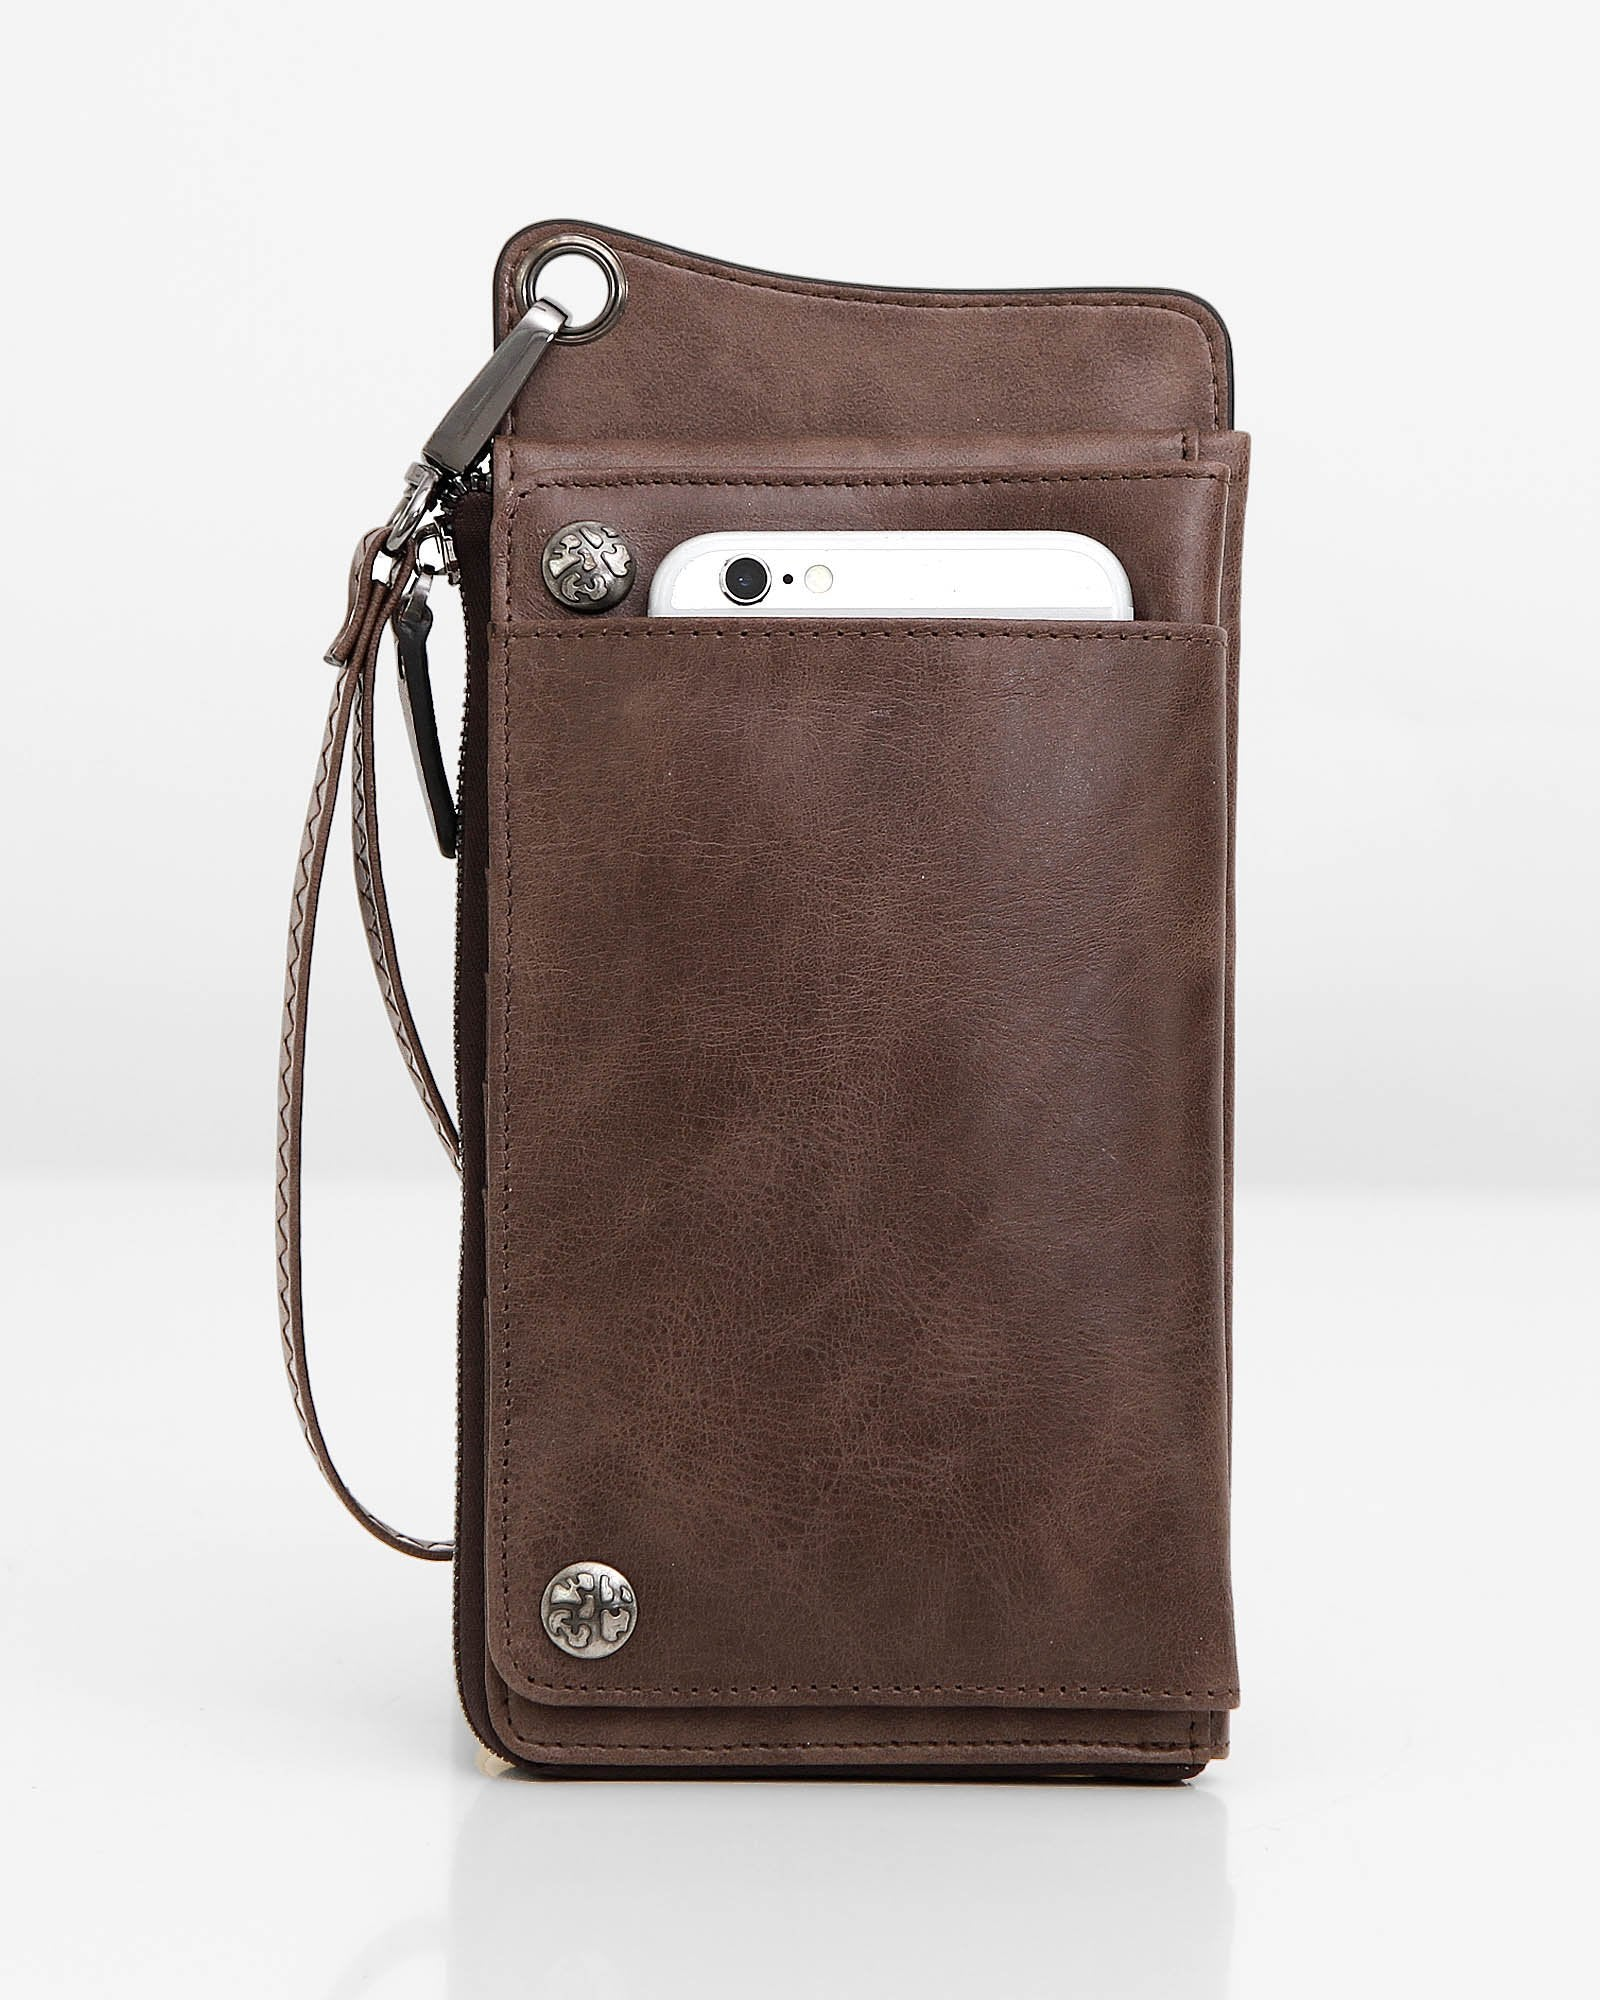 Penelope Leather Wallet - Coffee